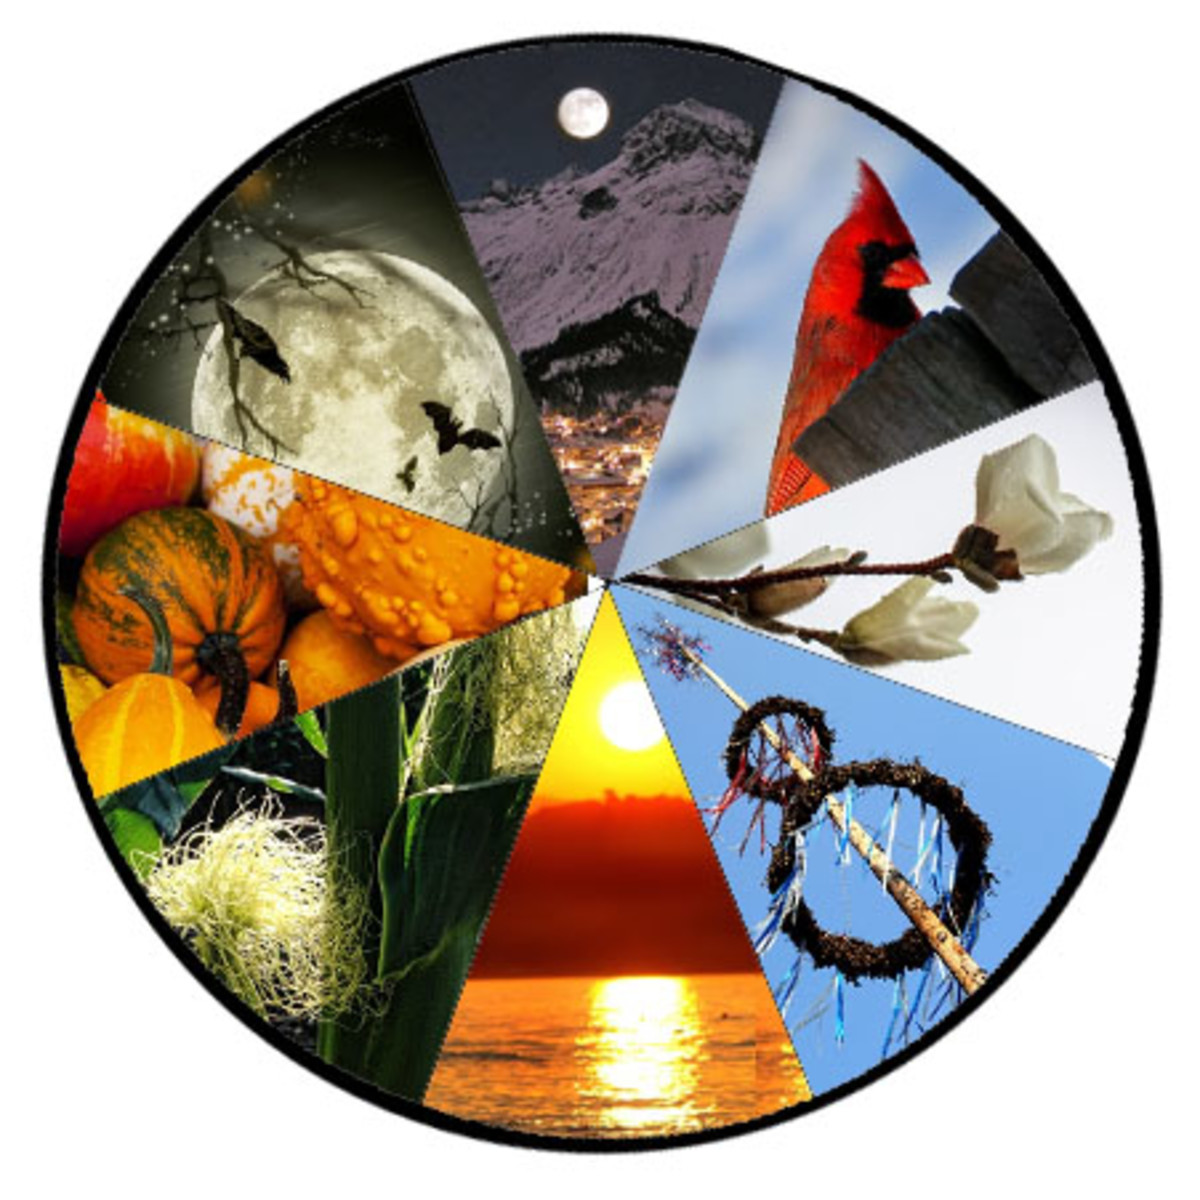 an-overview-of-the-wiccan-wheel-of-the-year